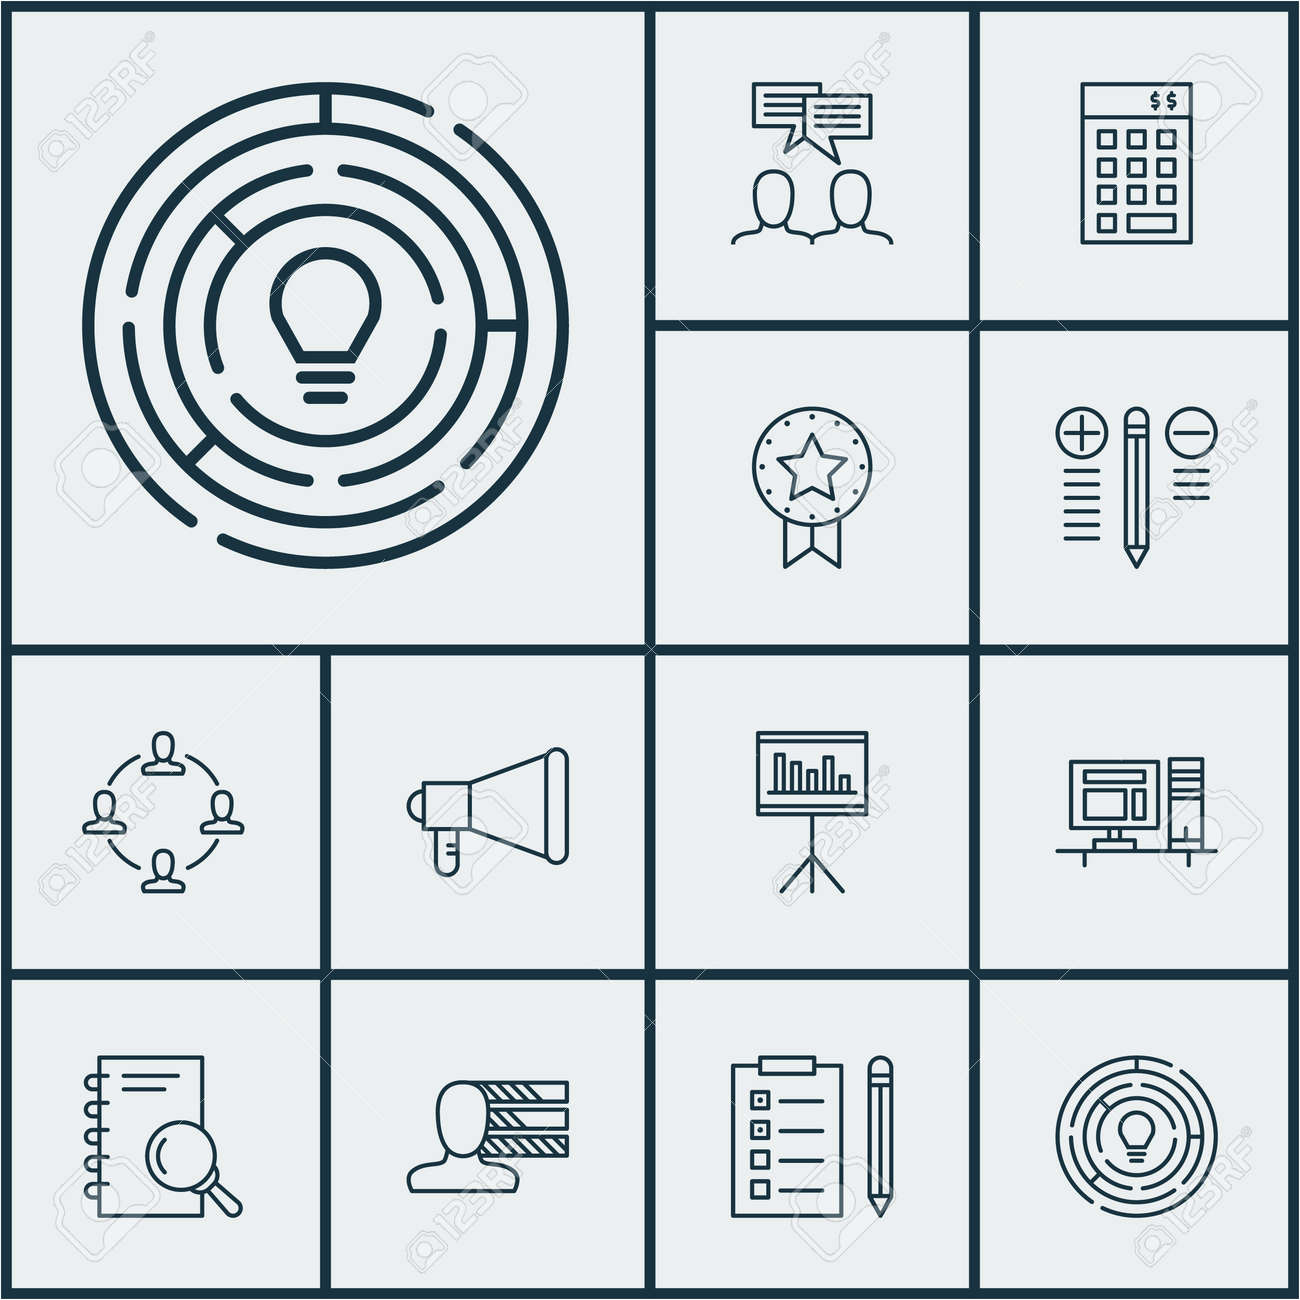 Set Of Project Management Icons On Presentation, Computer And